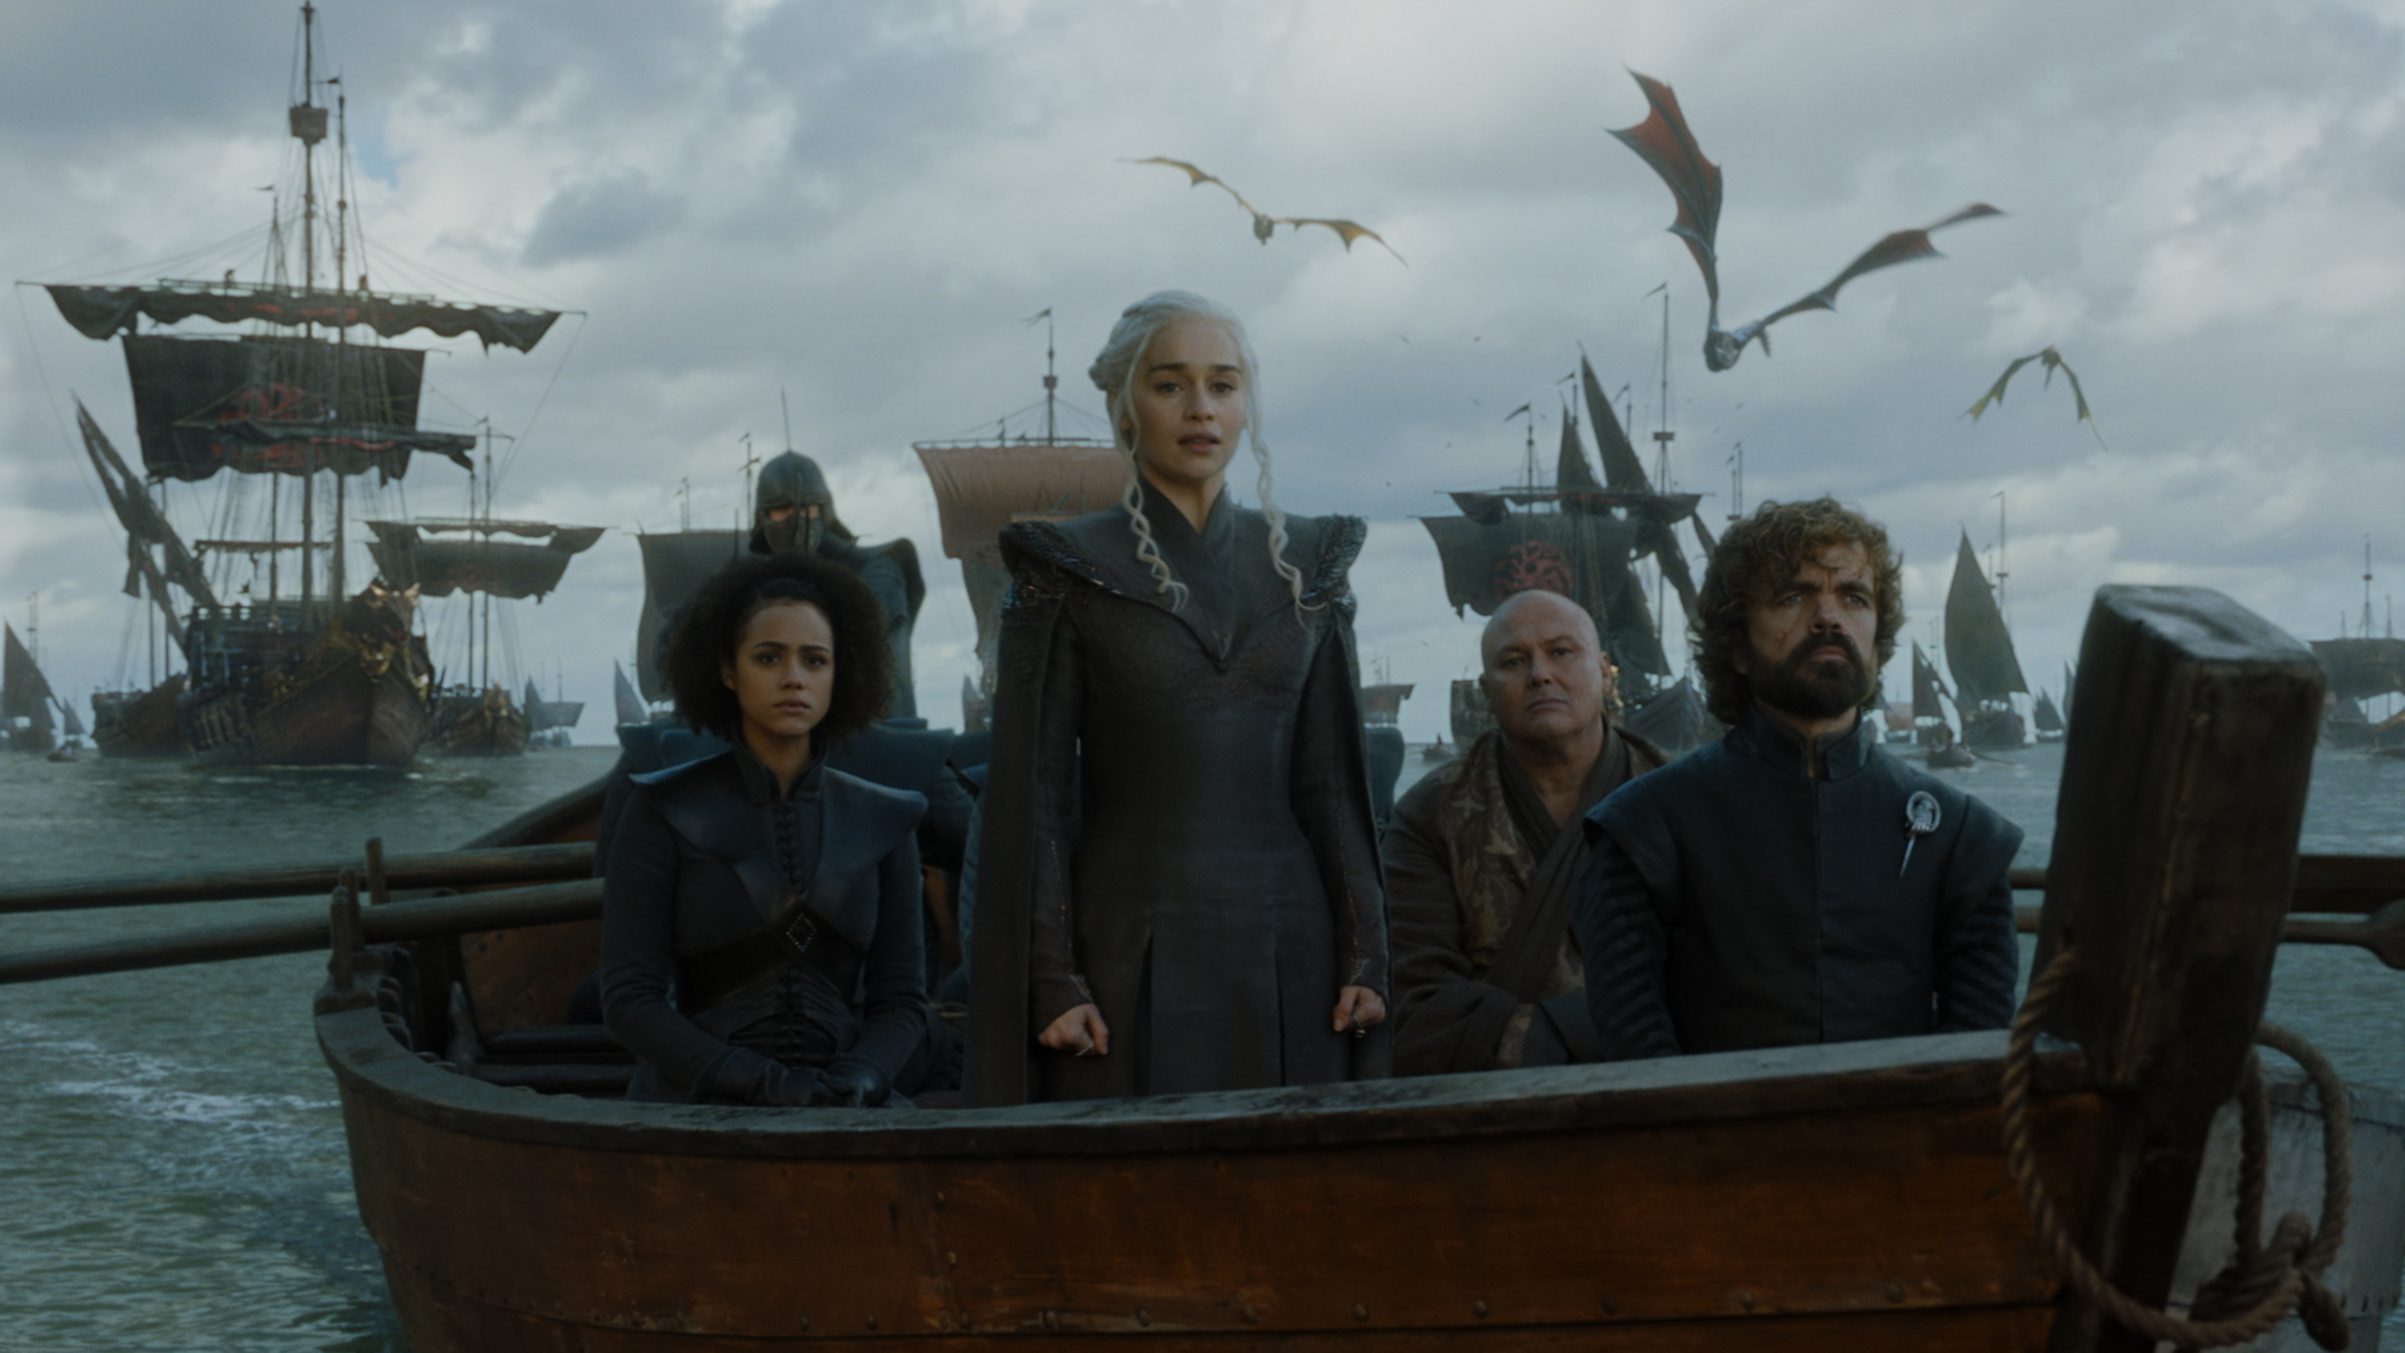 Emilia Clarke as Queen Daenerys Targaryen, Peter Dinklage as Tyrion Lannister, Nathalie Emmanuel as Missandei, Conleth Hill as Varys arrive in Westeros. Photo: HBO.